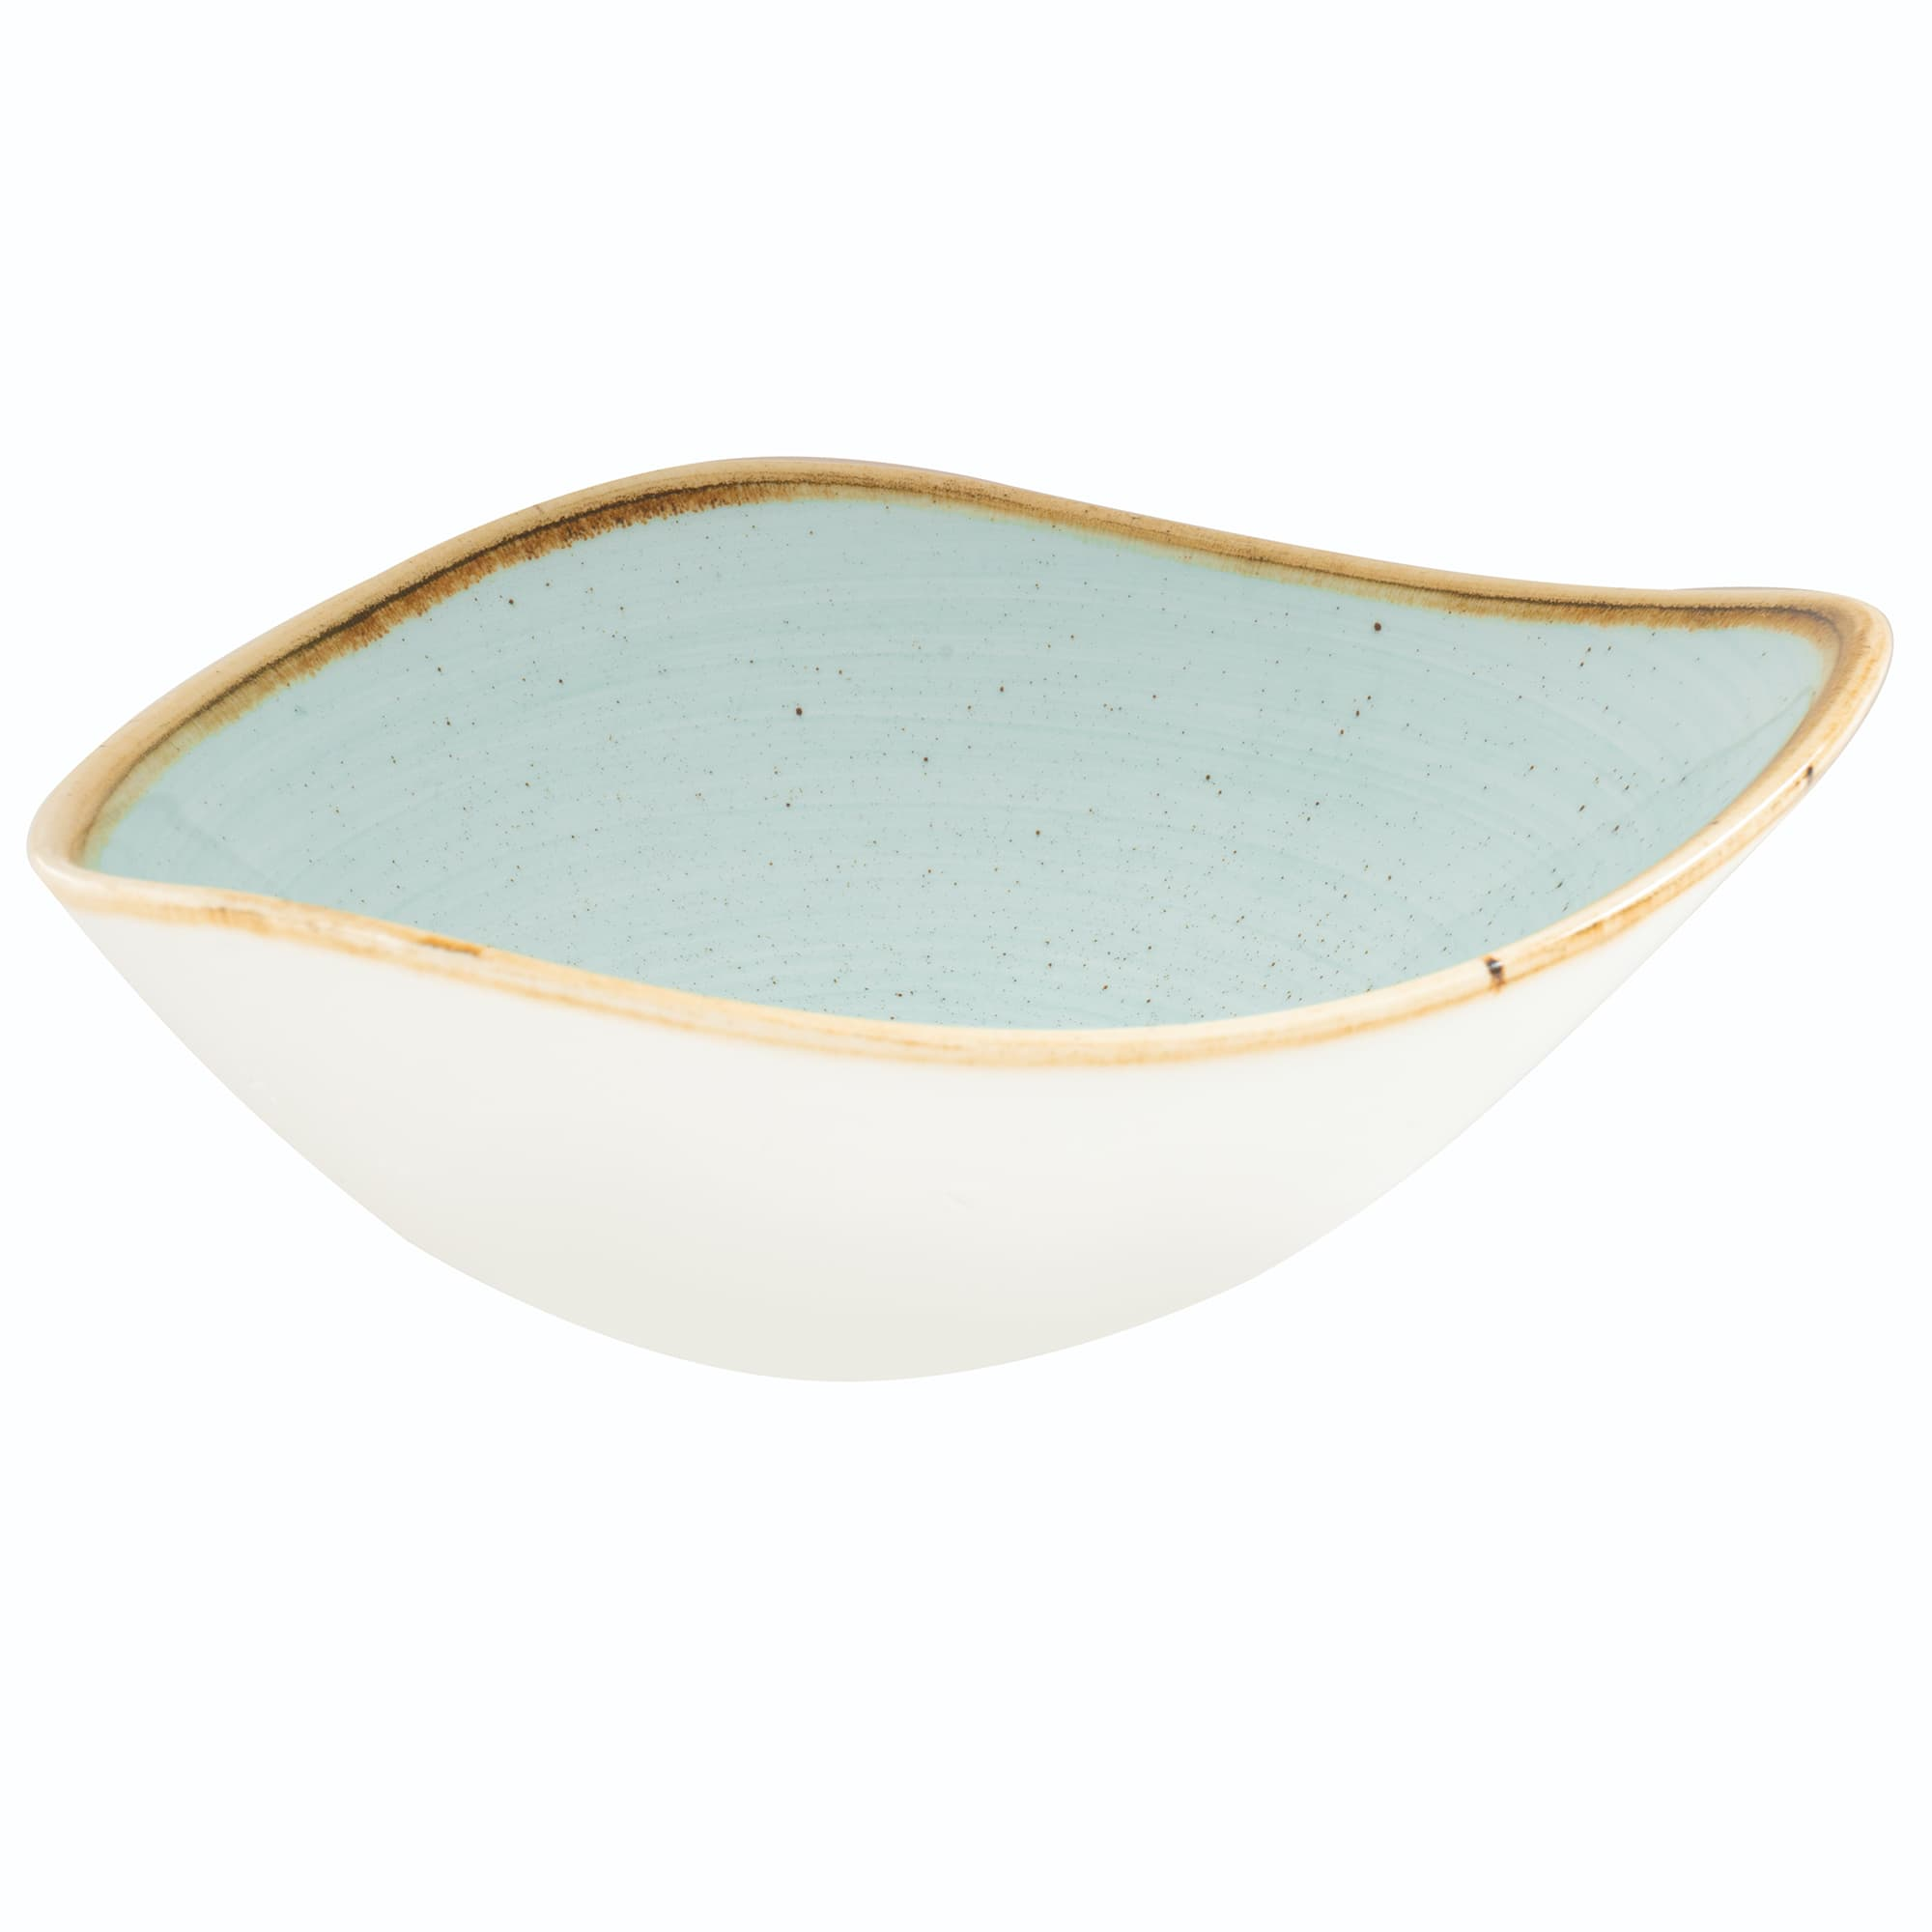 Churchill SDESTRB71 13 oz Triangular Stonecast Bowl - Ceramic, Duck Egg Blue